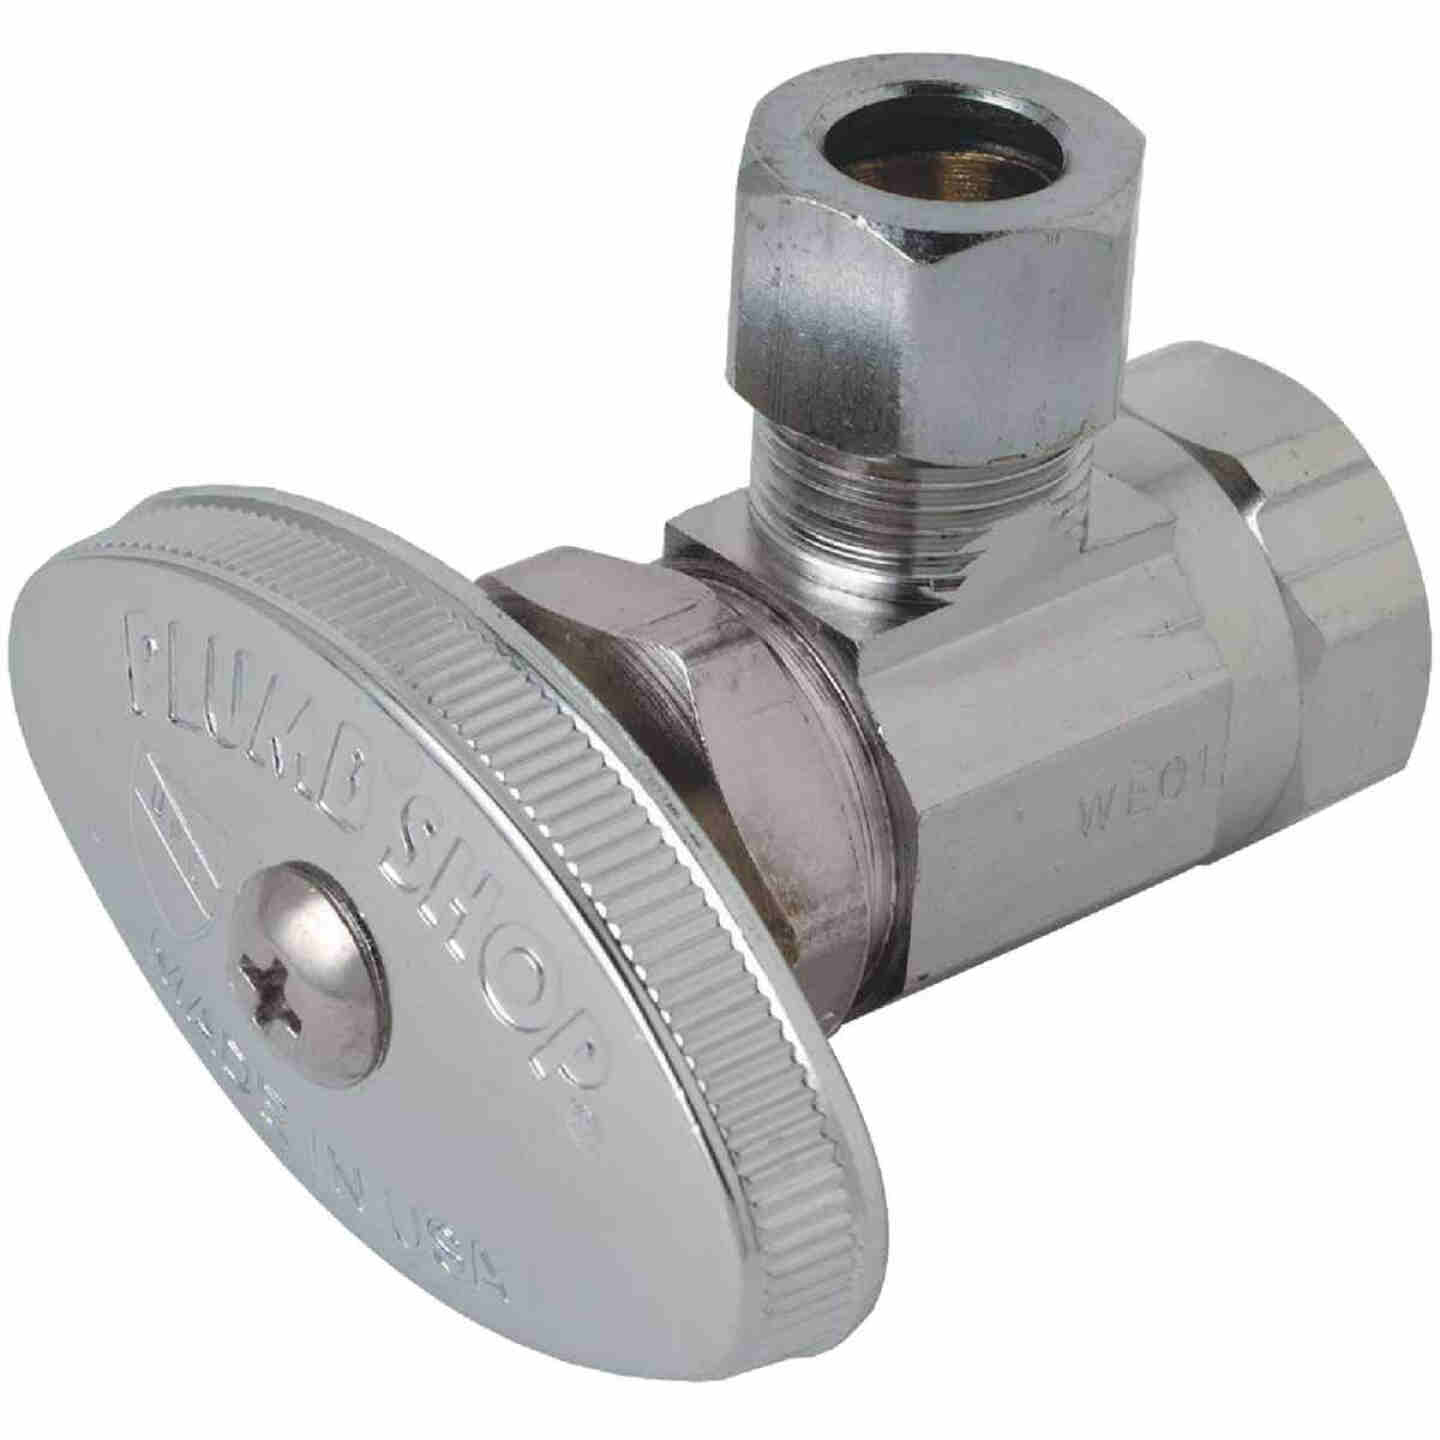 BrassCraft 3/8 In. FIP Inlet x 3/8 In. OD Tube Outle Multi-Turn Angle Valve Image 1